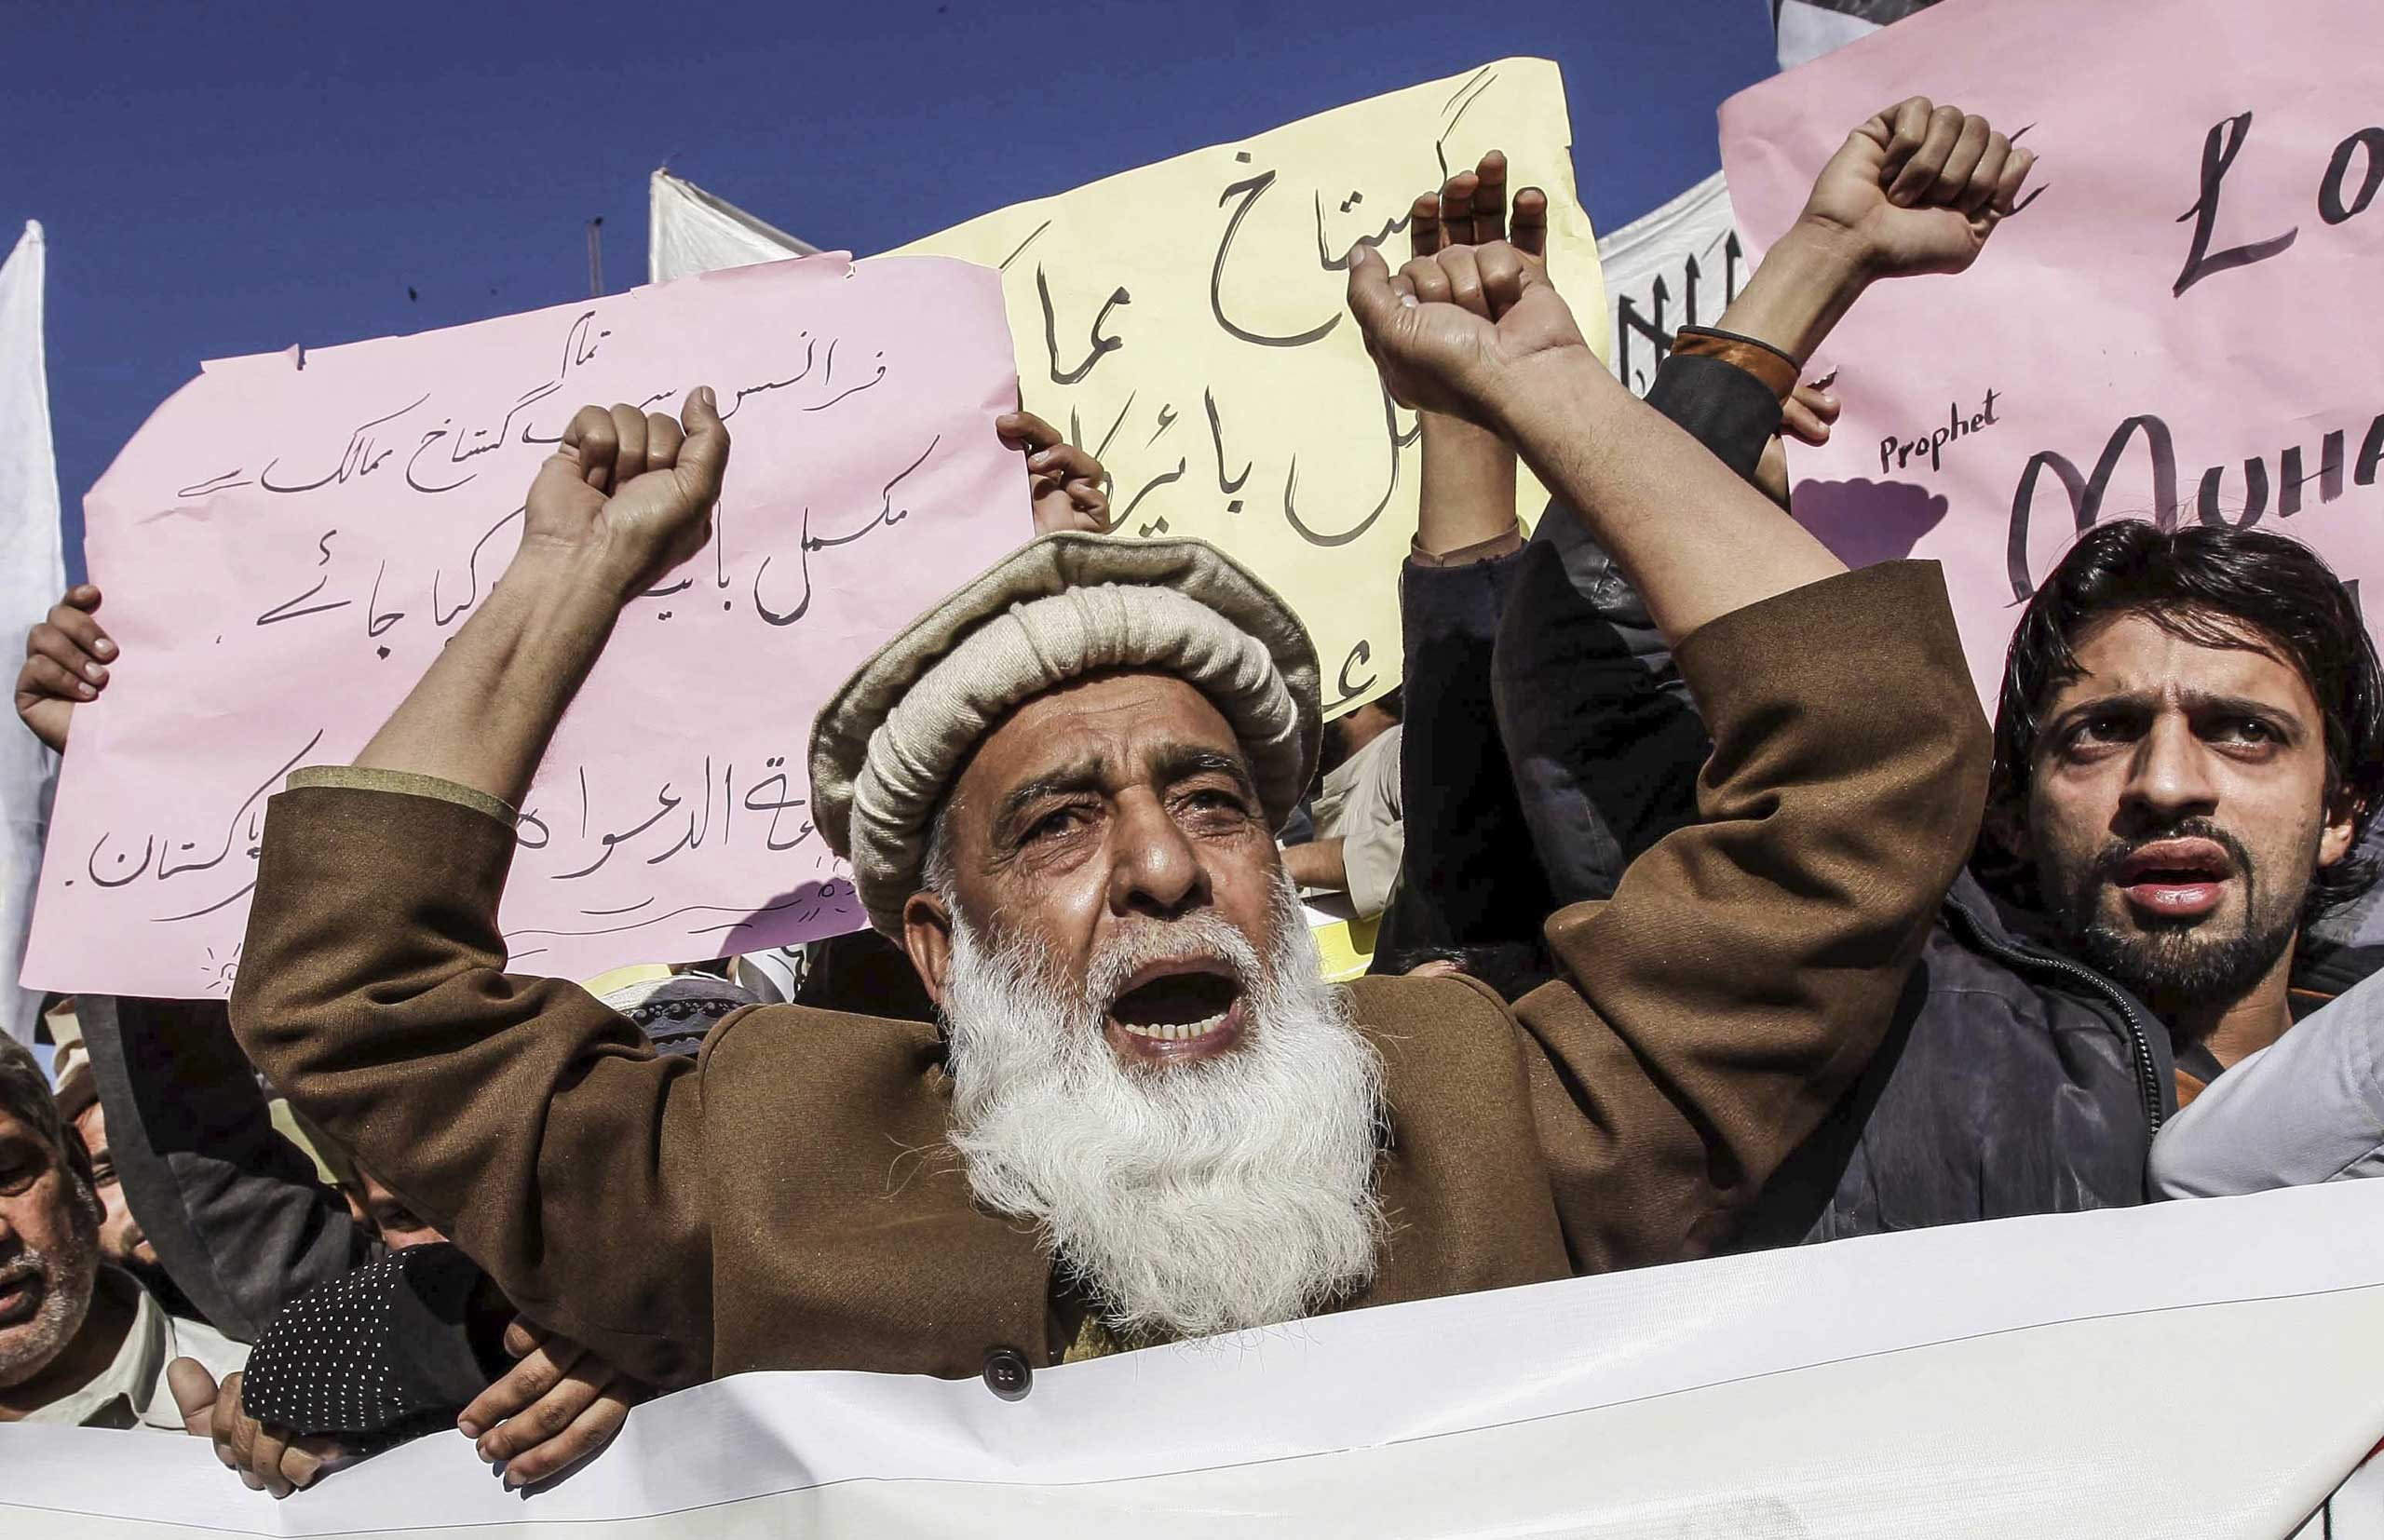 Supporters of banned Islamic charity Jamat-ud-Dawa protest controversial French magazine Charlie Hebdo's decision to publish a depiction of the Prophet Muhammad in Peshawar, Pakistan on Jan. 16, 2015.